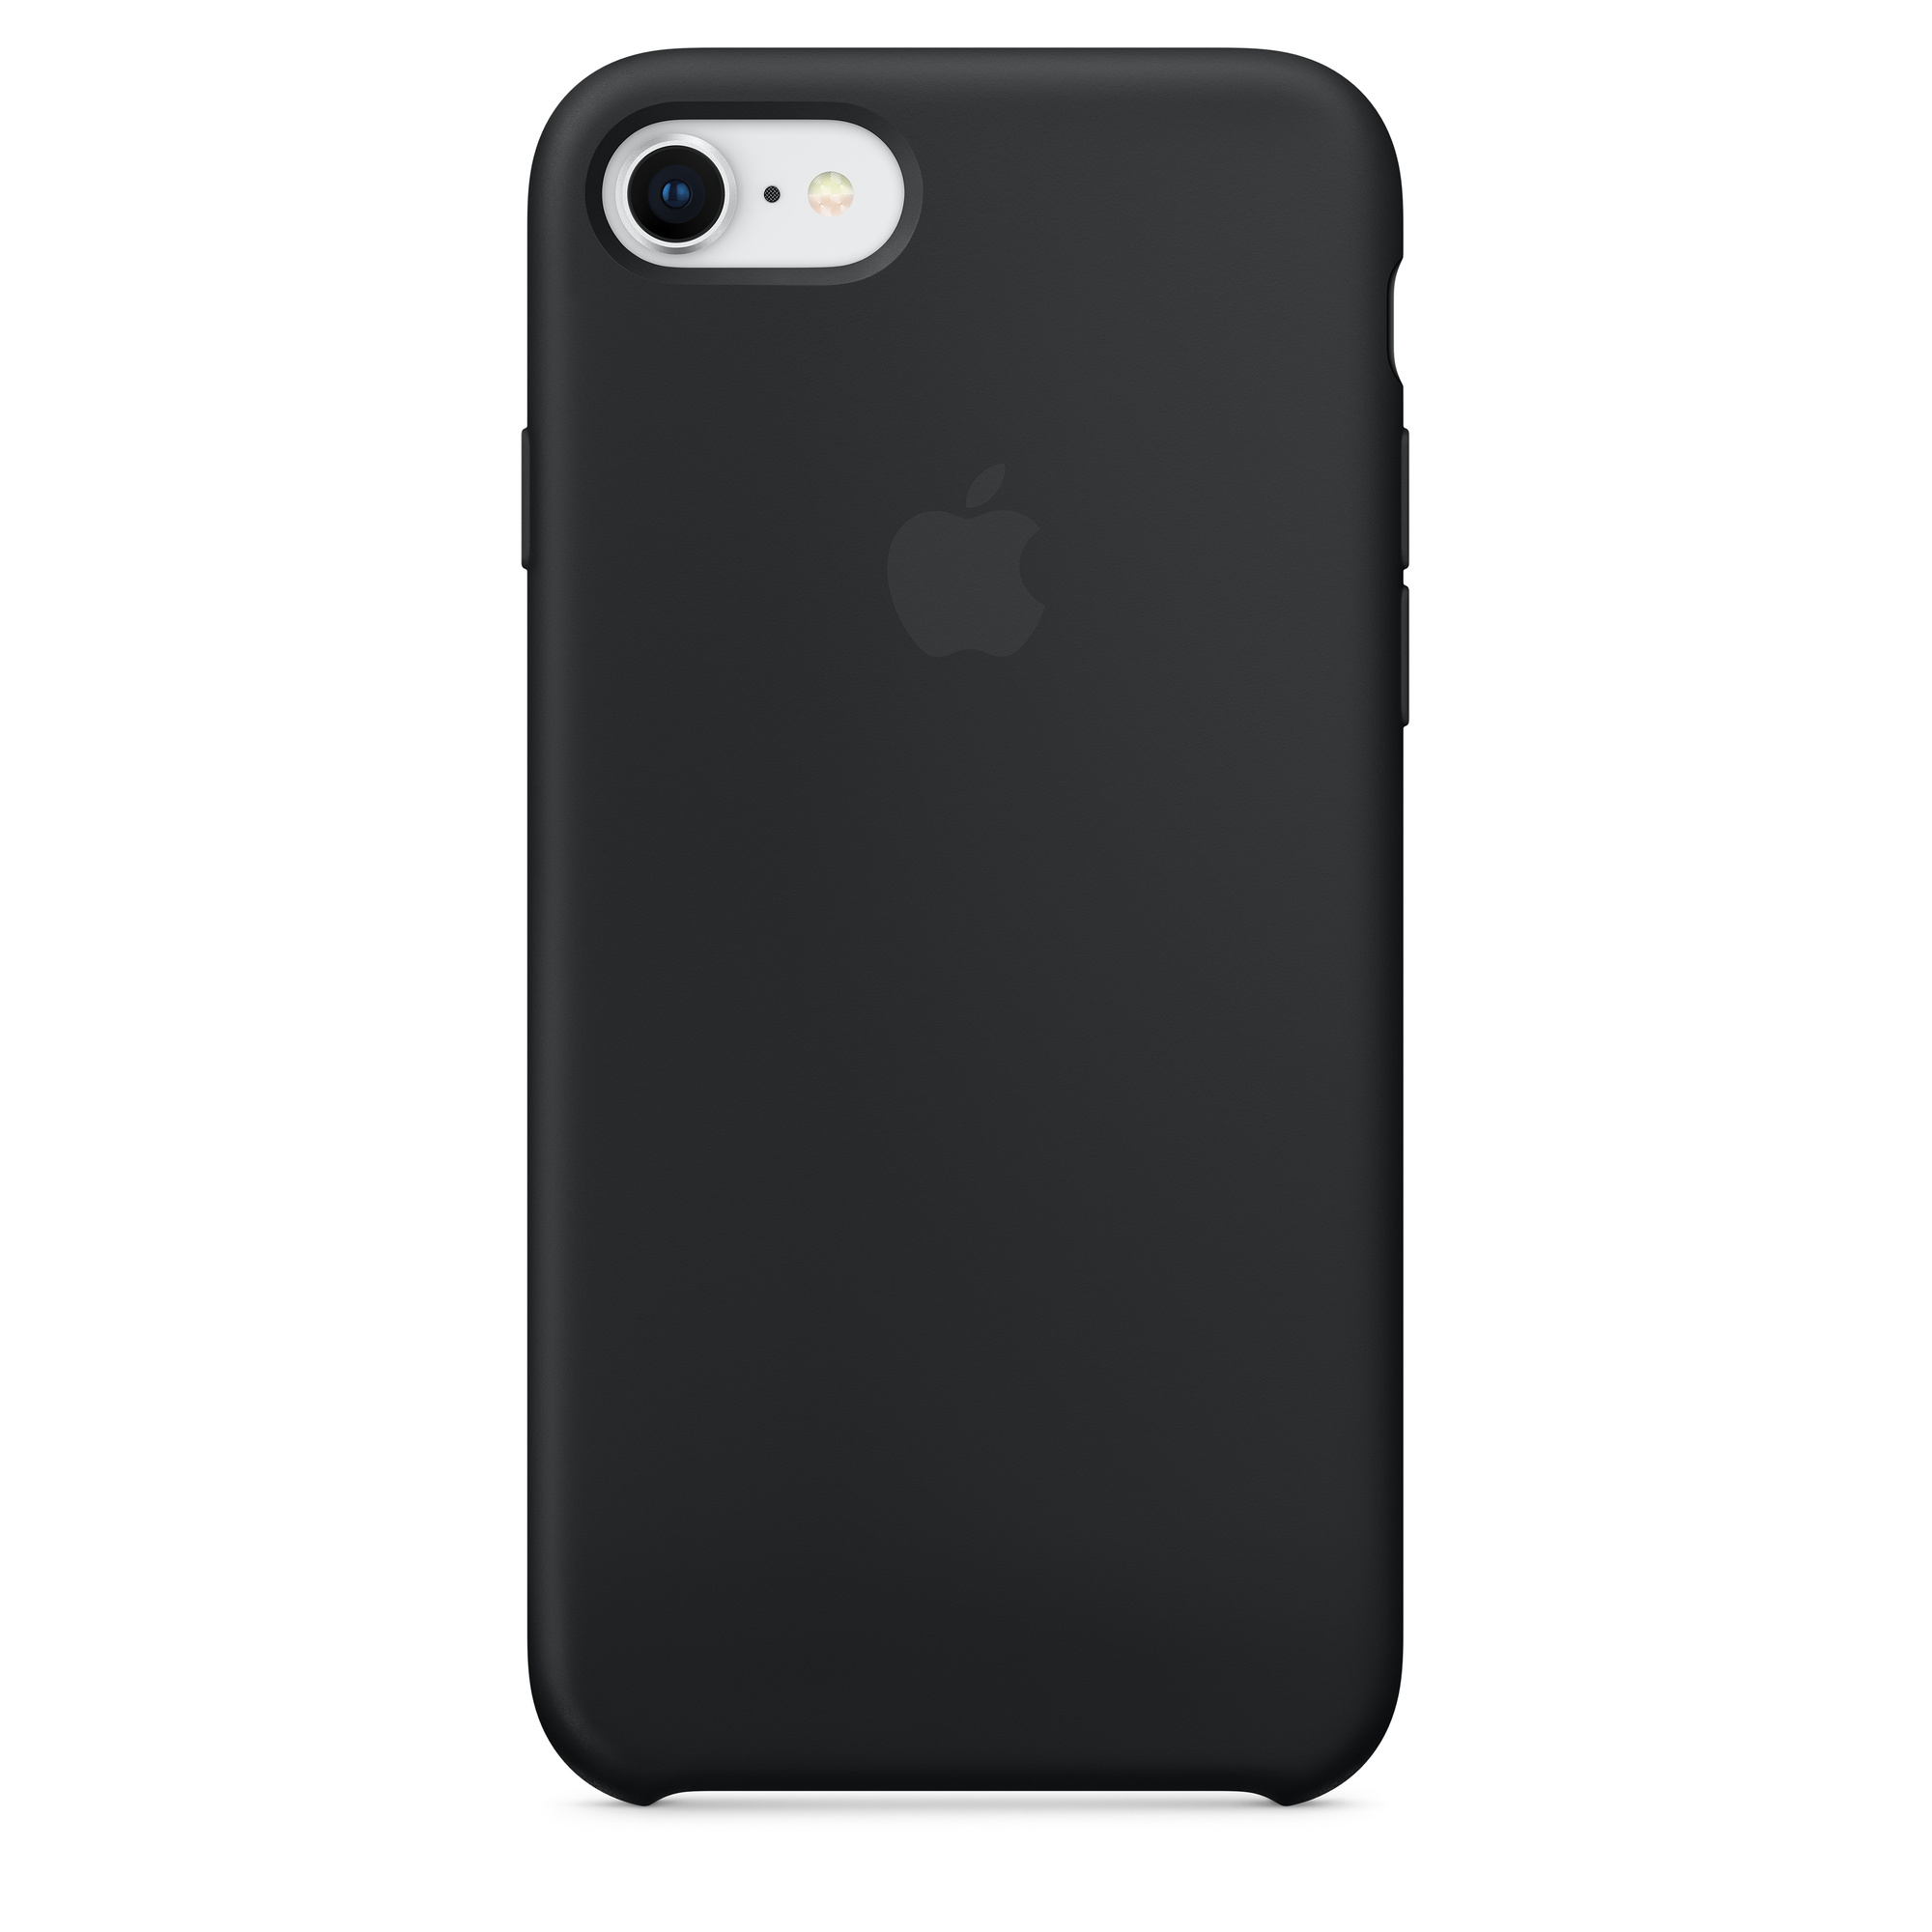 buy online adb7d 2b533 iPhone 8 / 7 Silicone Case - Black